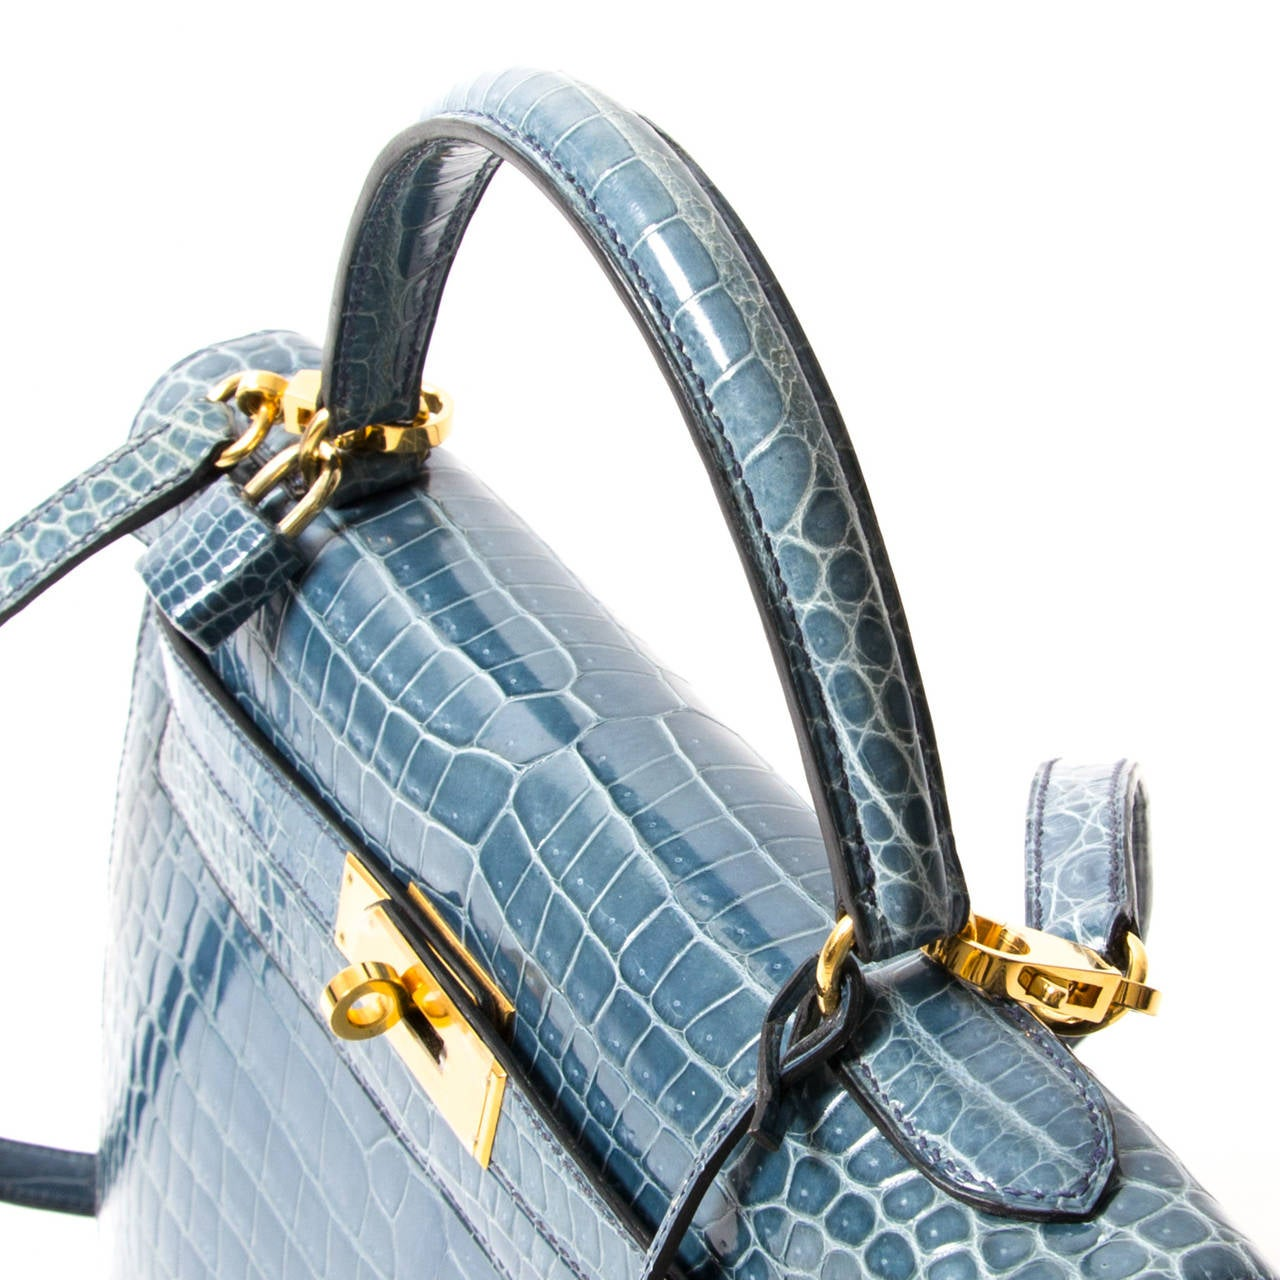 A rare Hermès Extraordinary Blue Jean Crocodile Porosus Kelly Bag Gold Hardware. 